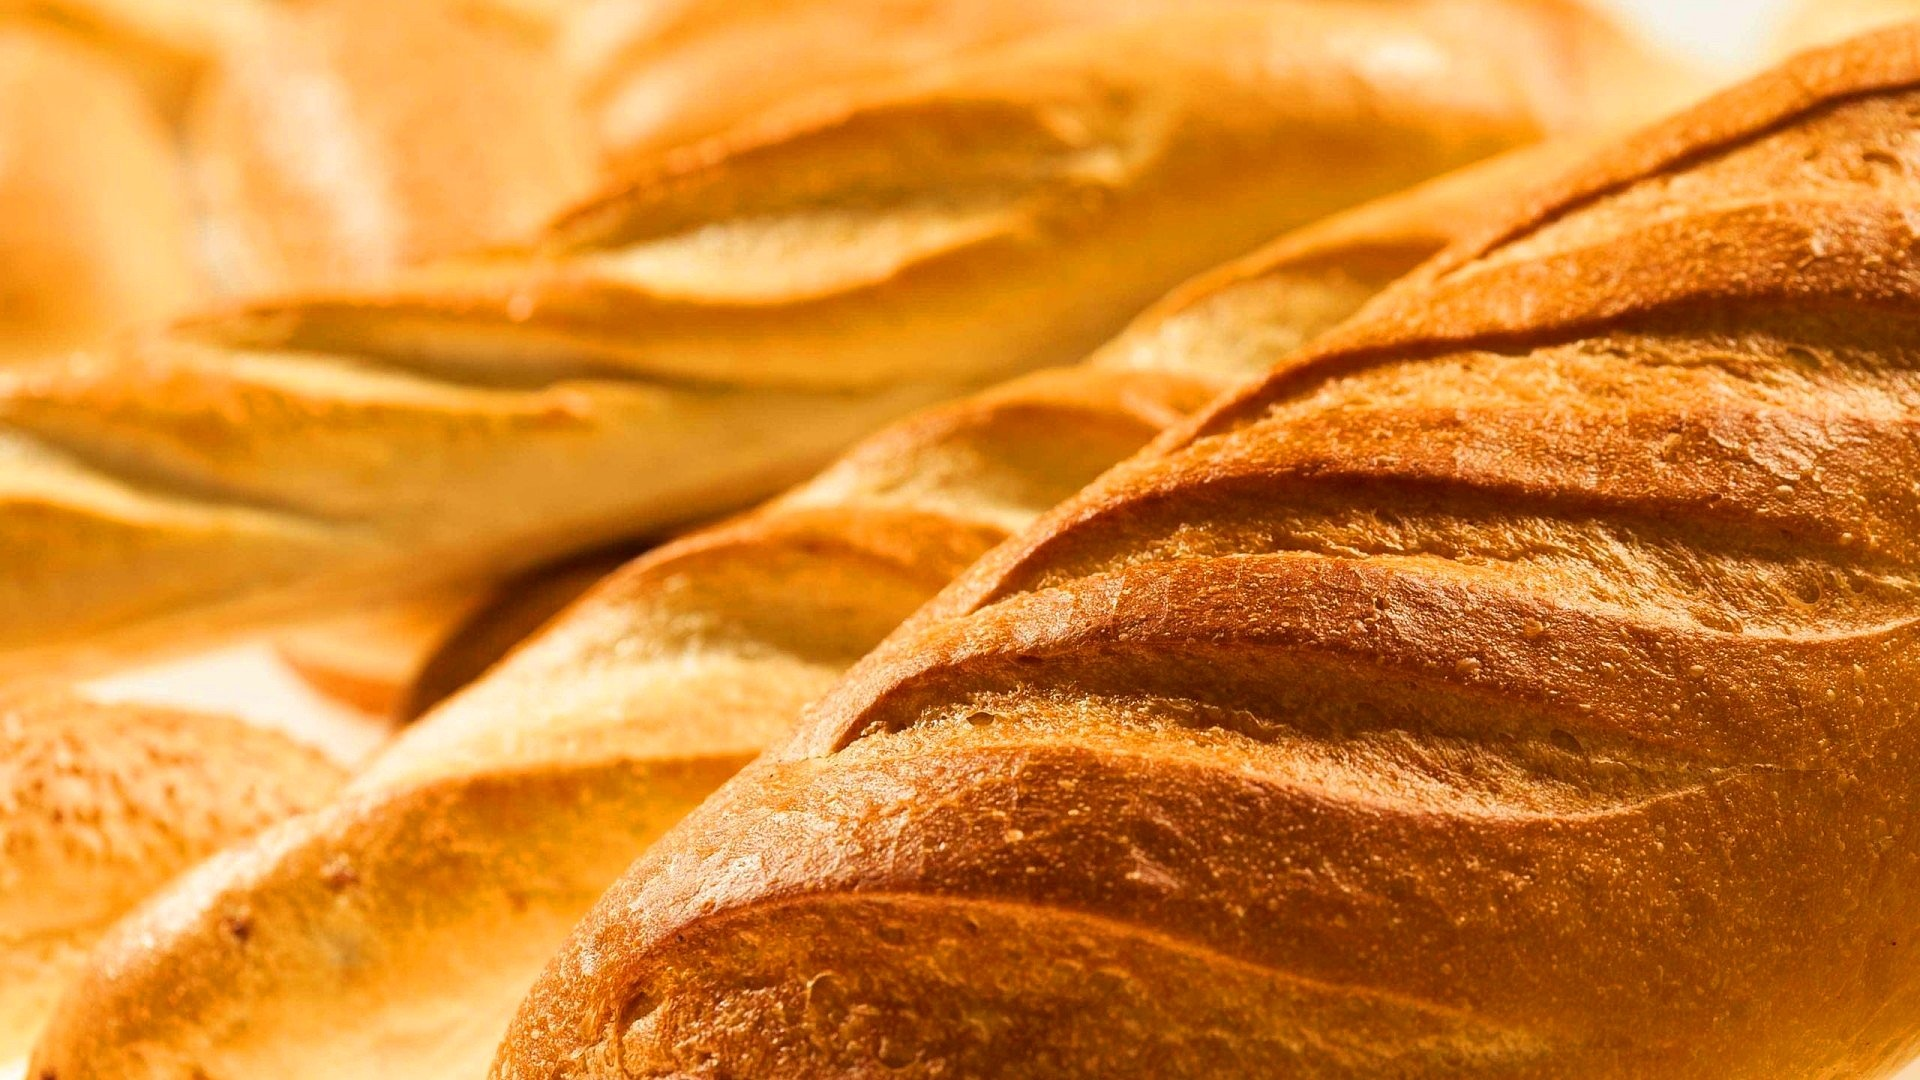 Bakery screen wallpaper